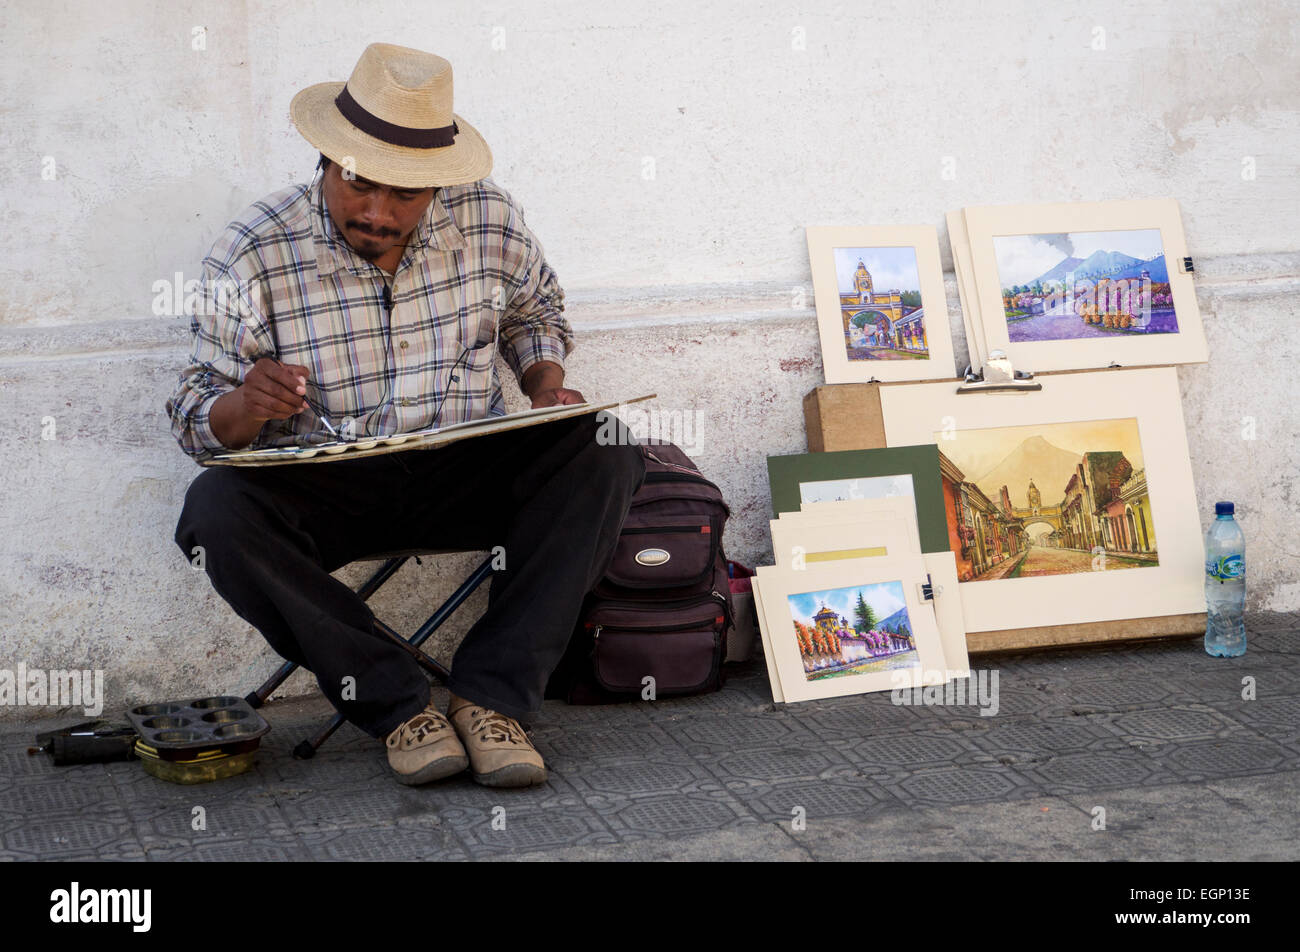 Artists paints in the old town of Antigua, Guatemala - Stock Image